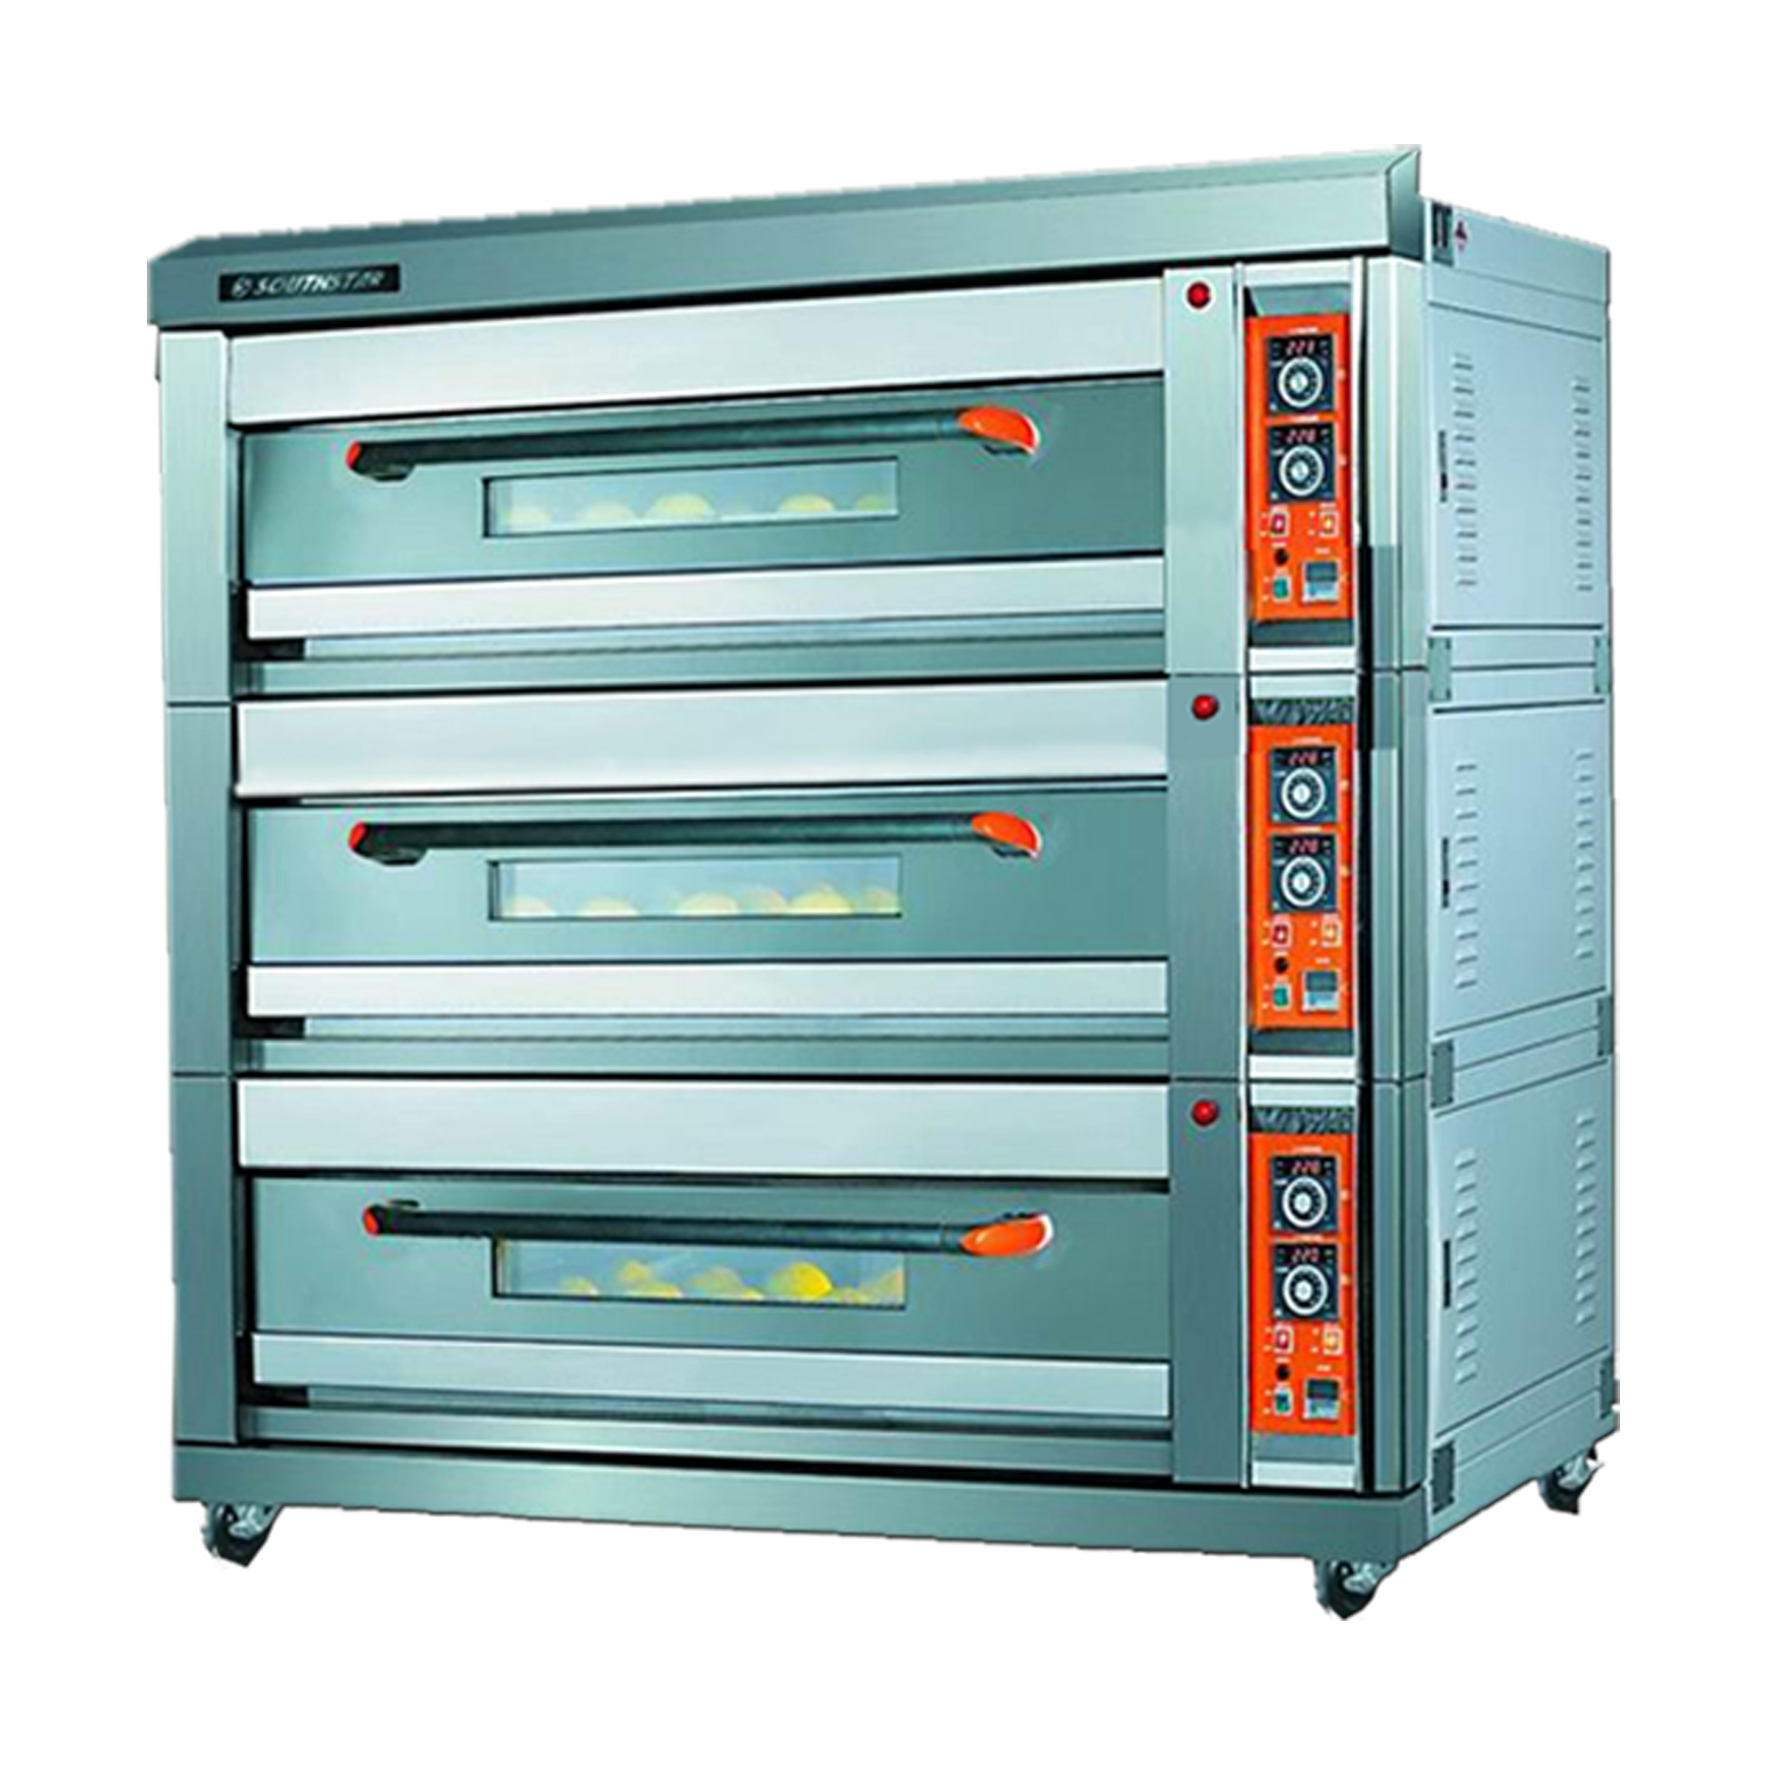 Oven Gas Otomatis Tipe NY